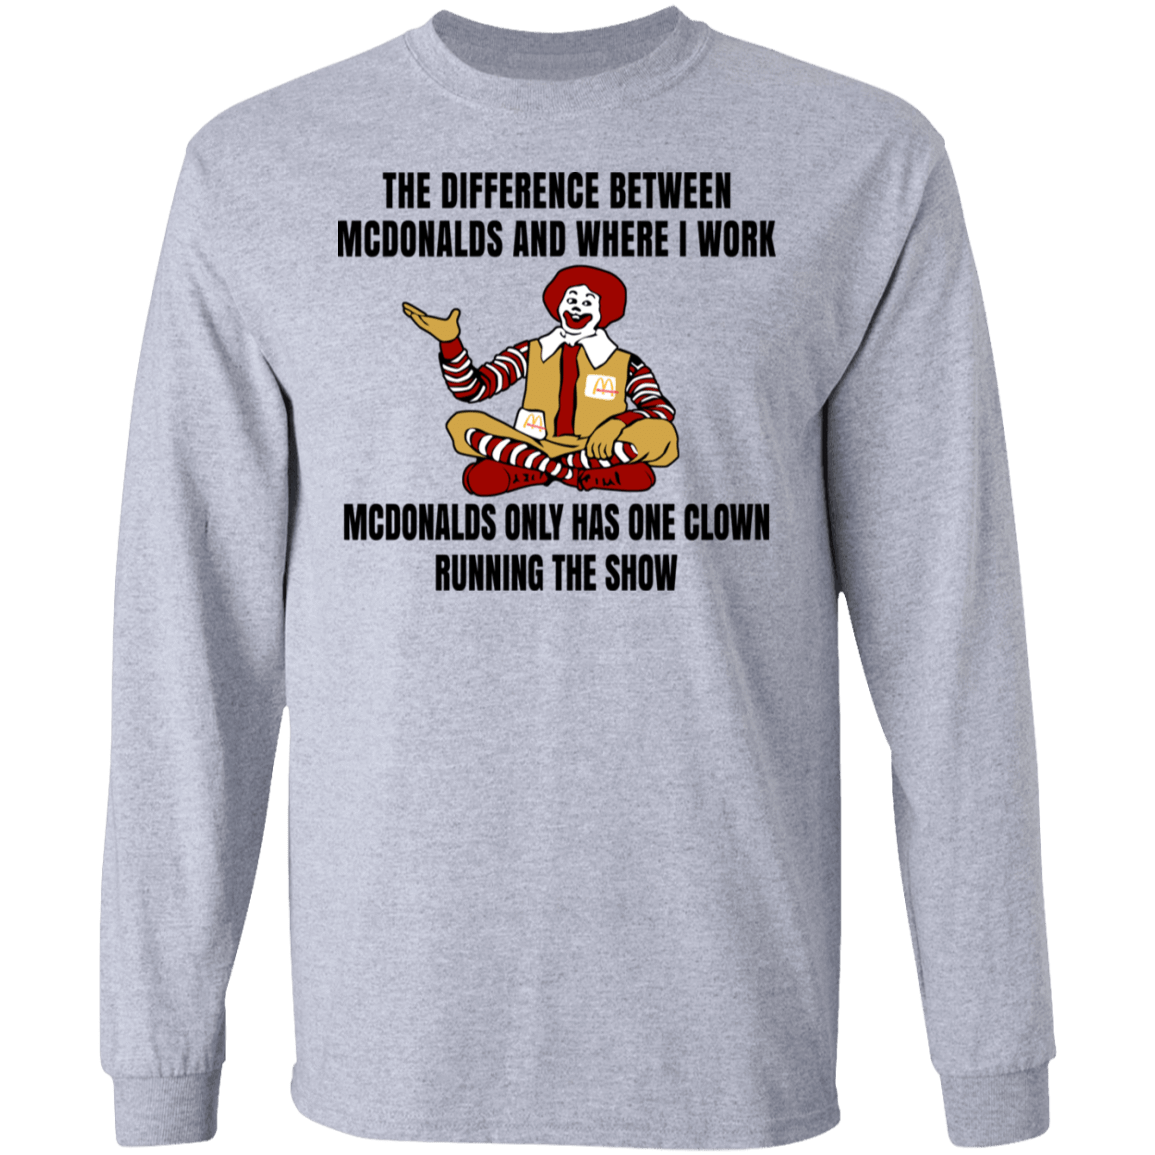 The Difference Between McDonalds And Where I Work McDonalds Only Has One Clown Running The Show T-Shirts, Hoodies, Tank 30-188-79763380-335 - Tee Ript